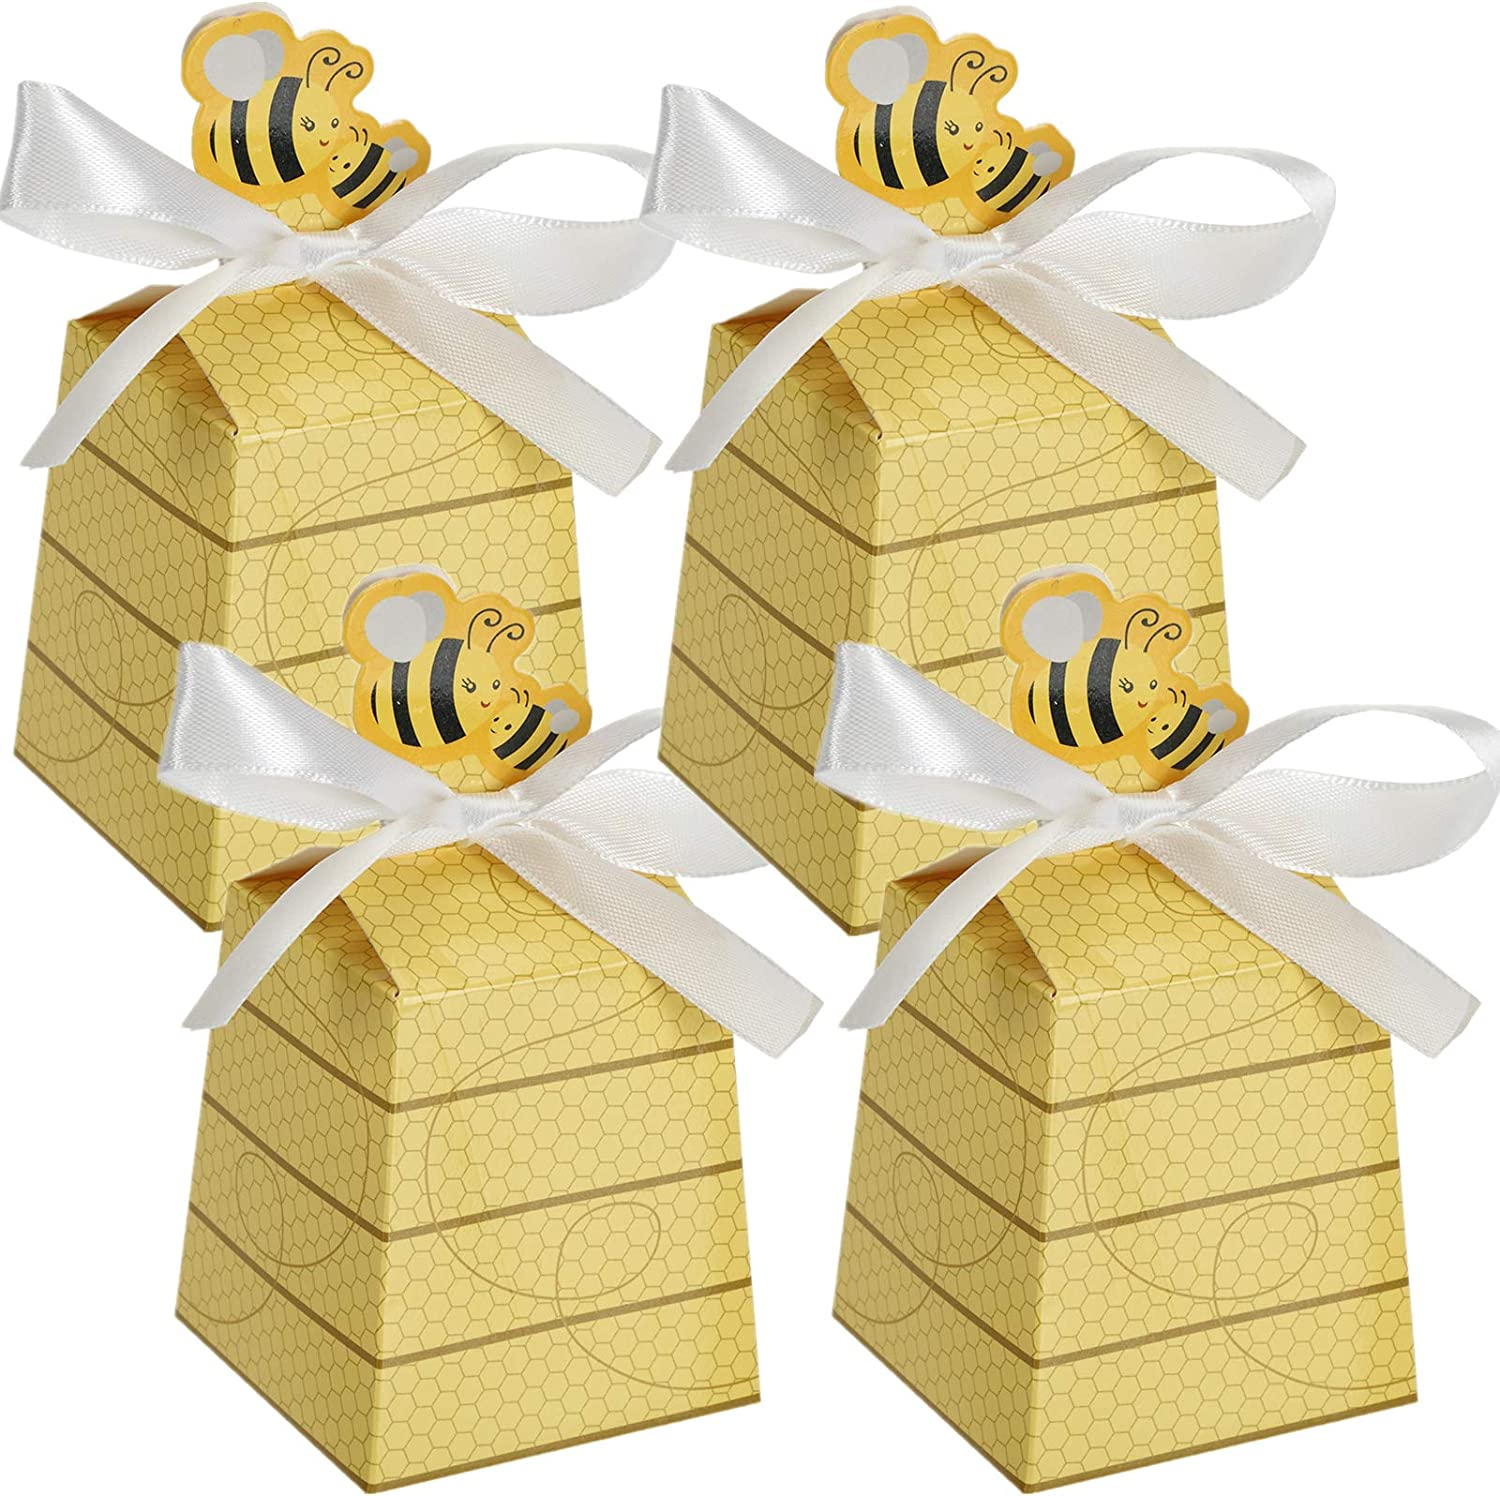 YOPAY 100 Pack Paper Treat Boxes, Mini Baby Favors Candy Gift Boxes with Ribbons, Small Cookie Chocolate Box for Baby Shower, Birthday, Wedding Favors Supplies, Yellow Beehive, 2.6 x 2.8 x 2.1 Inches